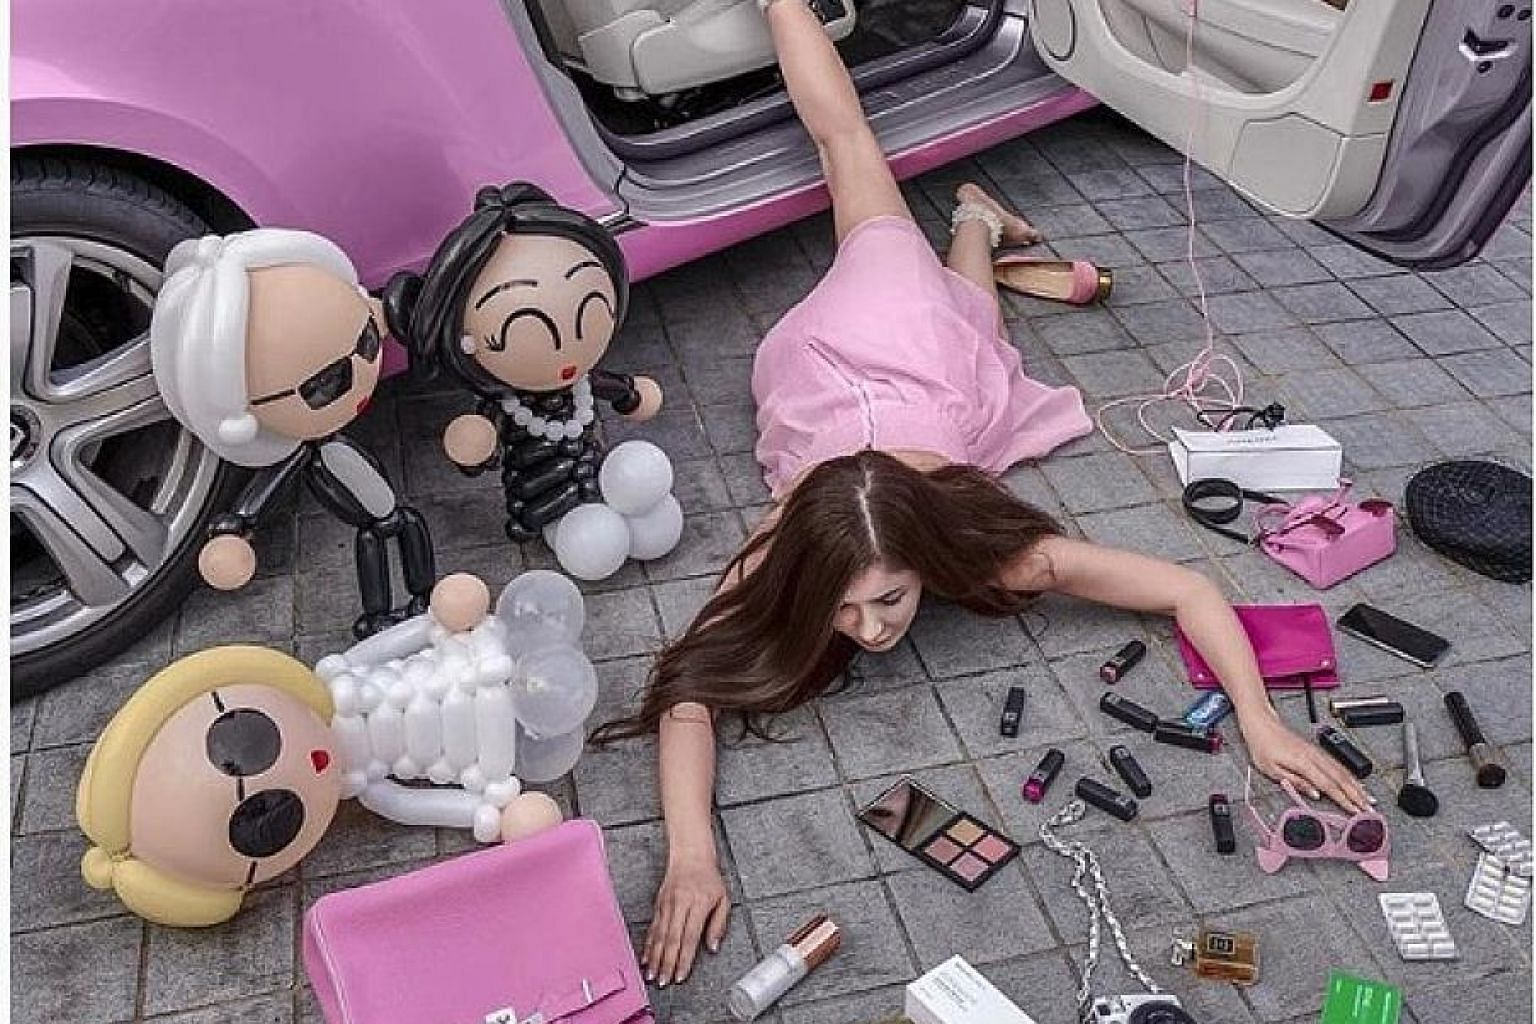 """Singapore socialite Jamie Chua doing the Falling Stars Challenge, which involves people sharing their best """"fake fall"""" pictures on Instagram, surrounded by their expensive possessions."""